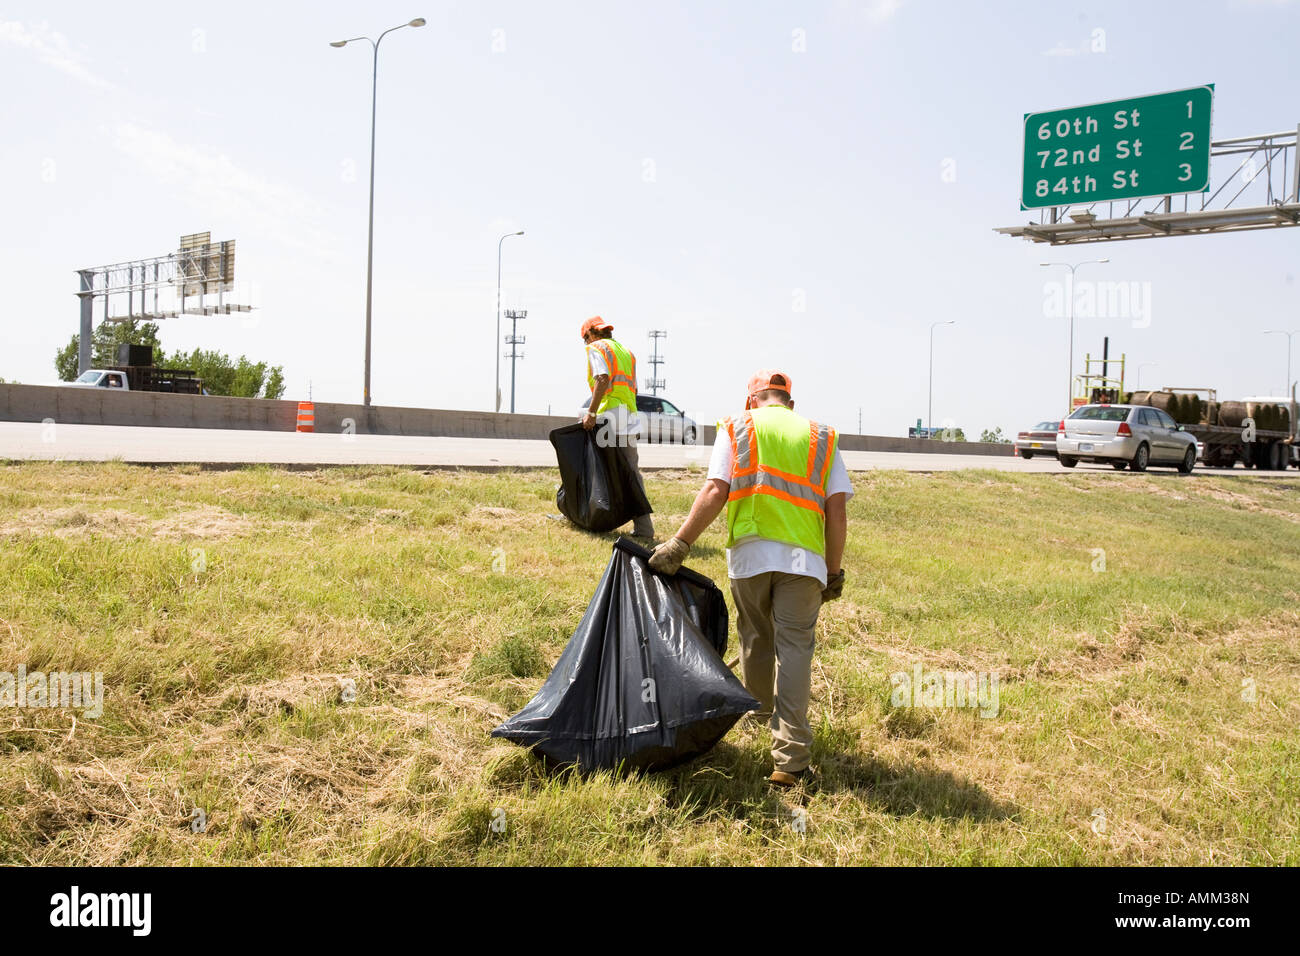 Work release inmates working with picking up trash on the side of the road. Omaha, Nebraska. - Stock Image